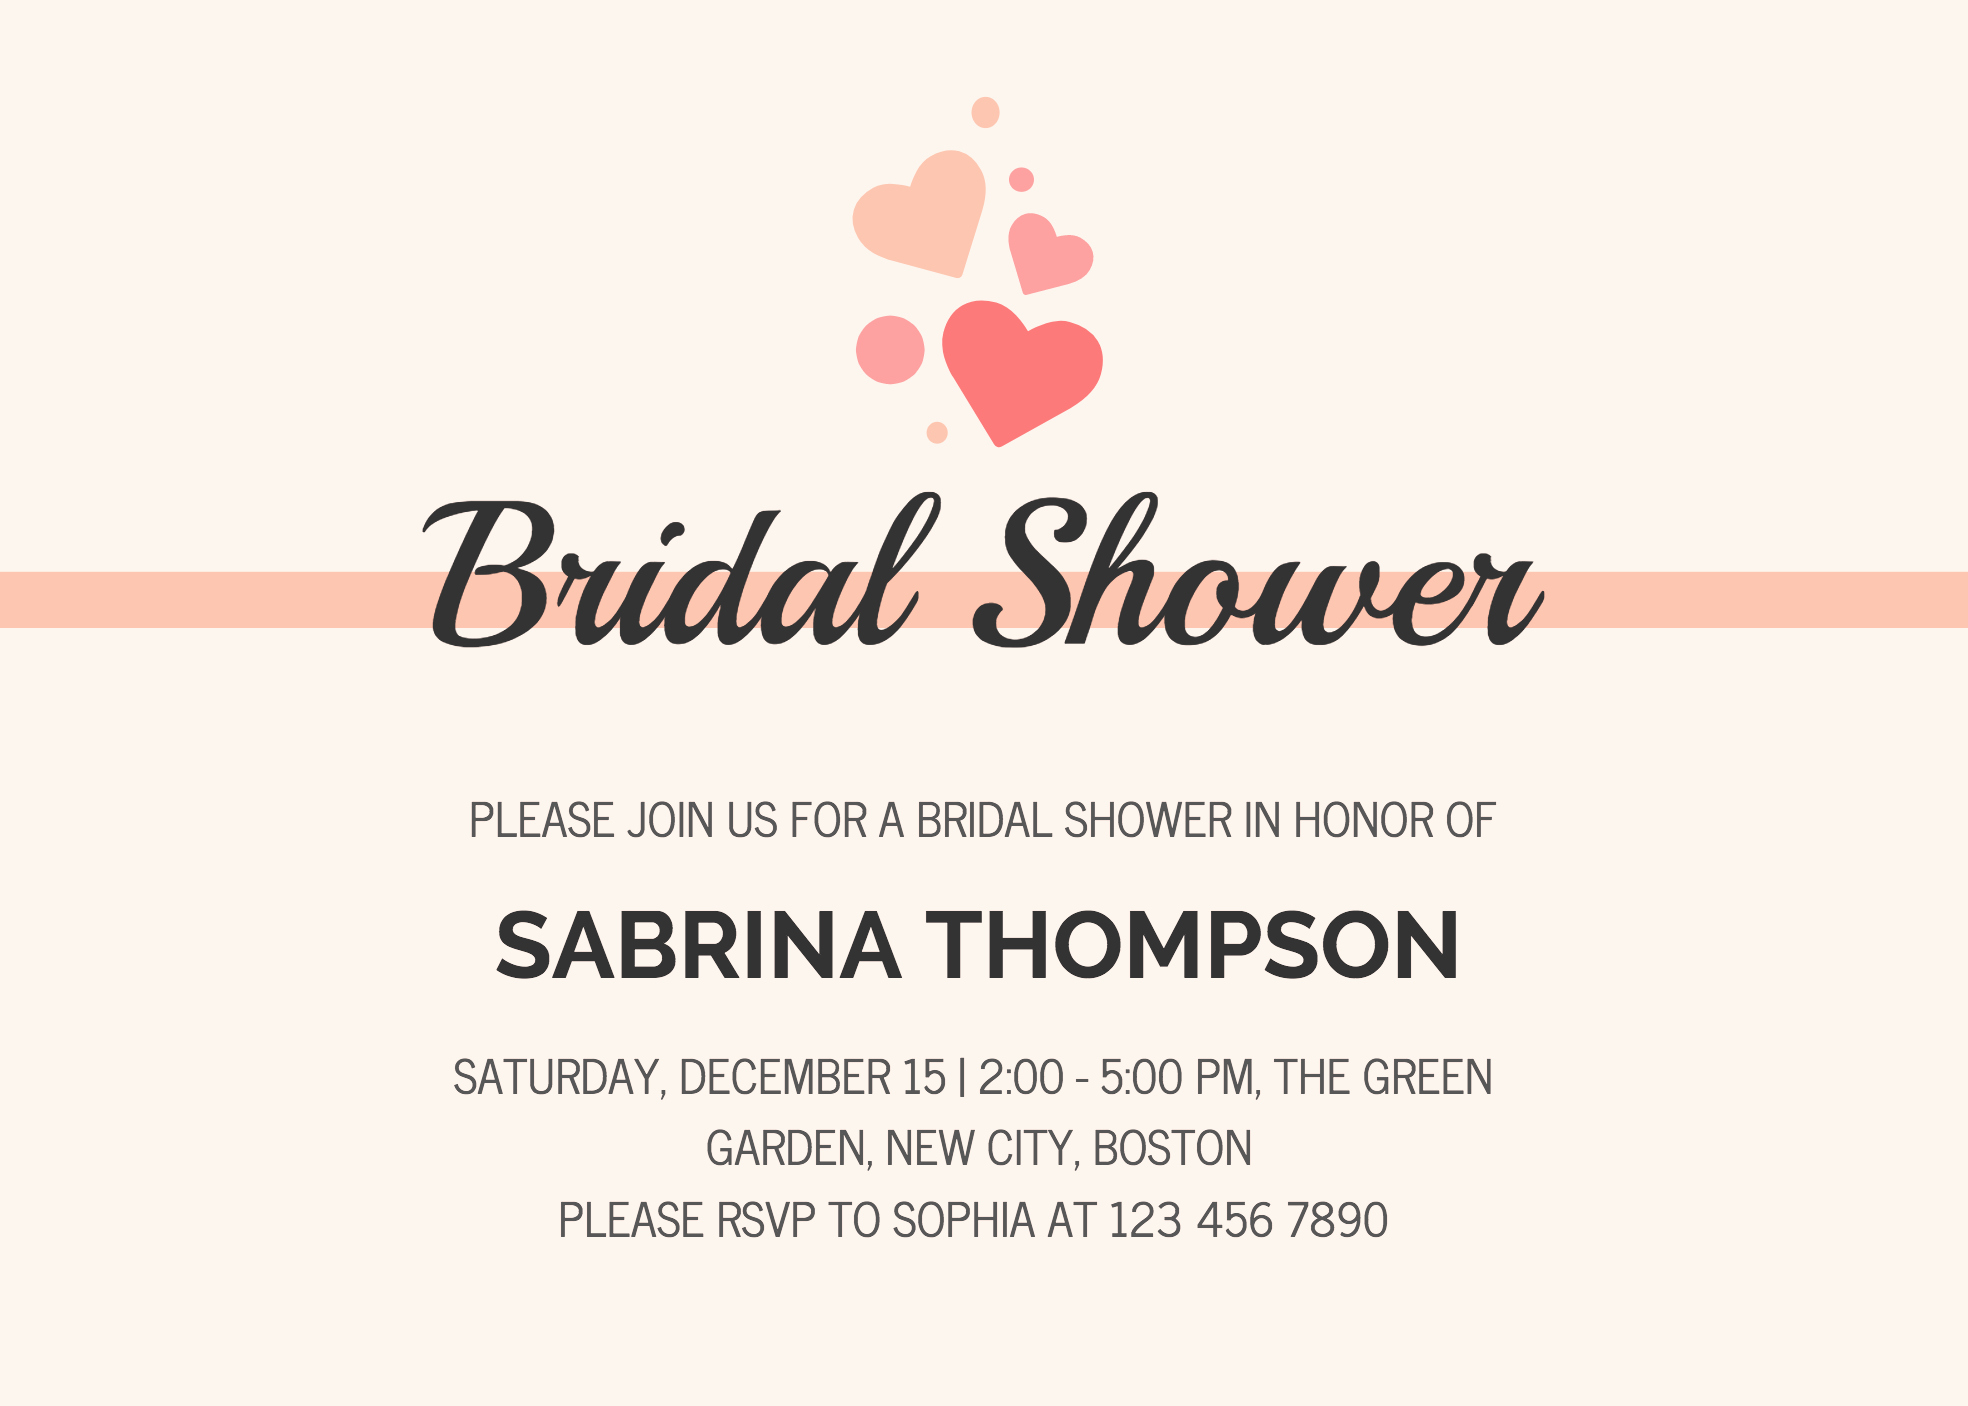 Wedding Shower Invitation Templates Awesome 19 Diy Bridal Shower and Wedding Invitation Templates